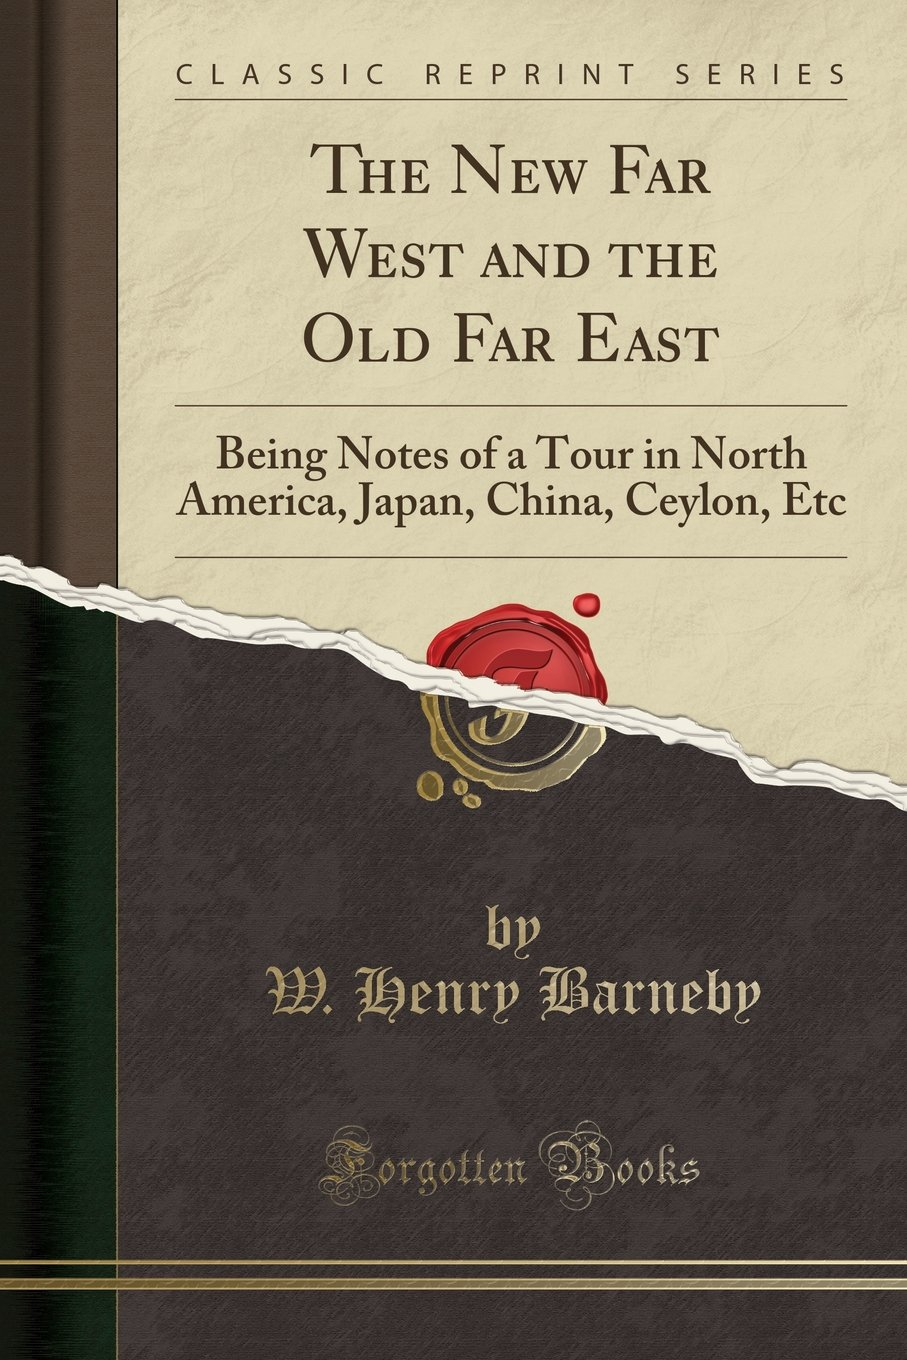 The New Far West and the Old Far East: Being Notes of a Tour in North America, Japan, China, Ceylon, Etc (Classic Reprint)